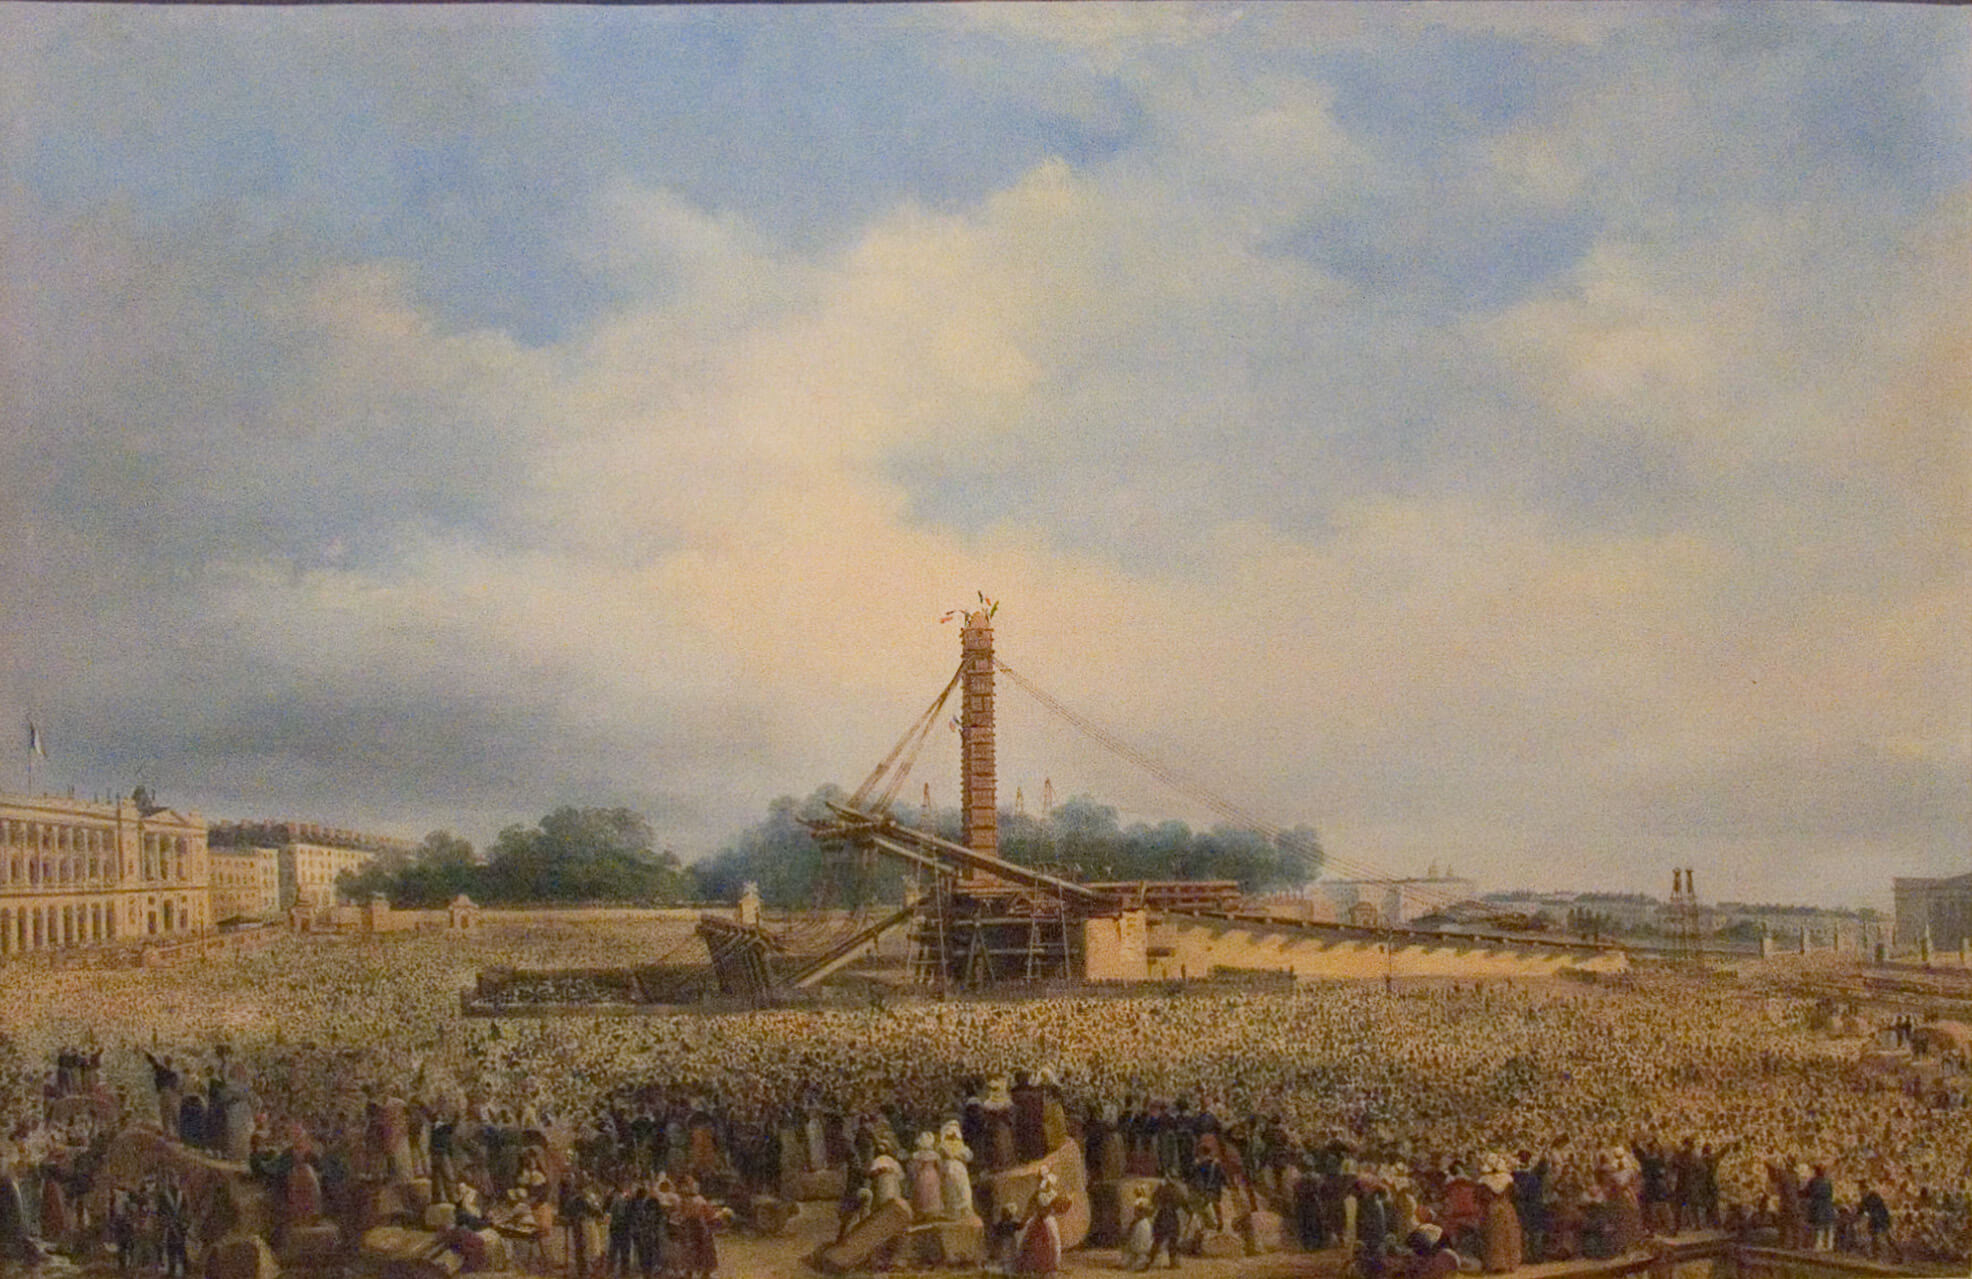 Painting showing the raising of the Luxor Obelisk on the place de la Concorde